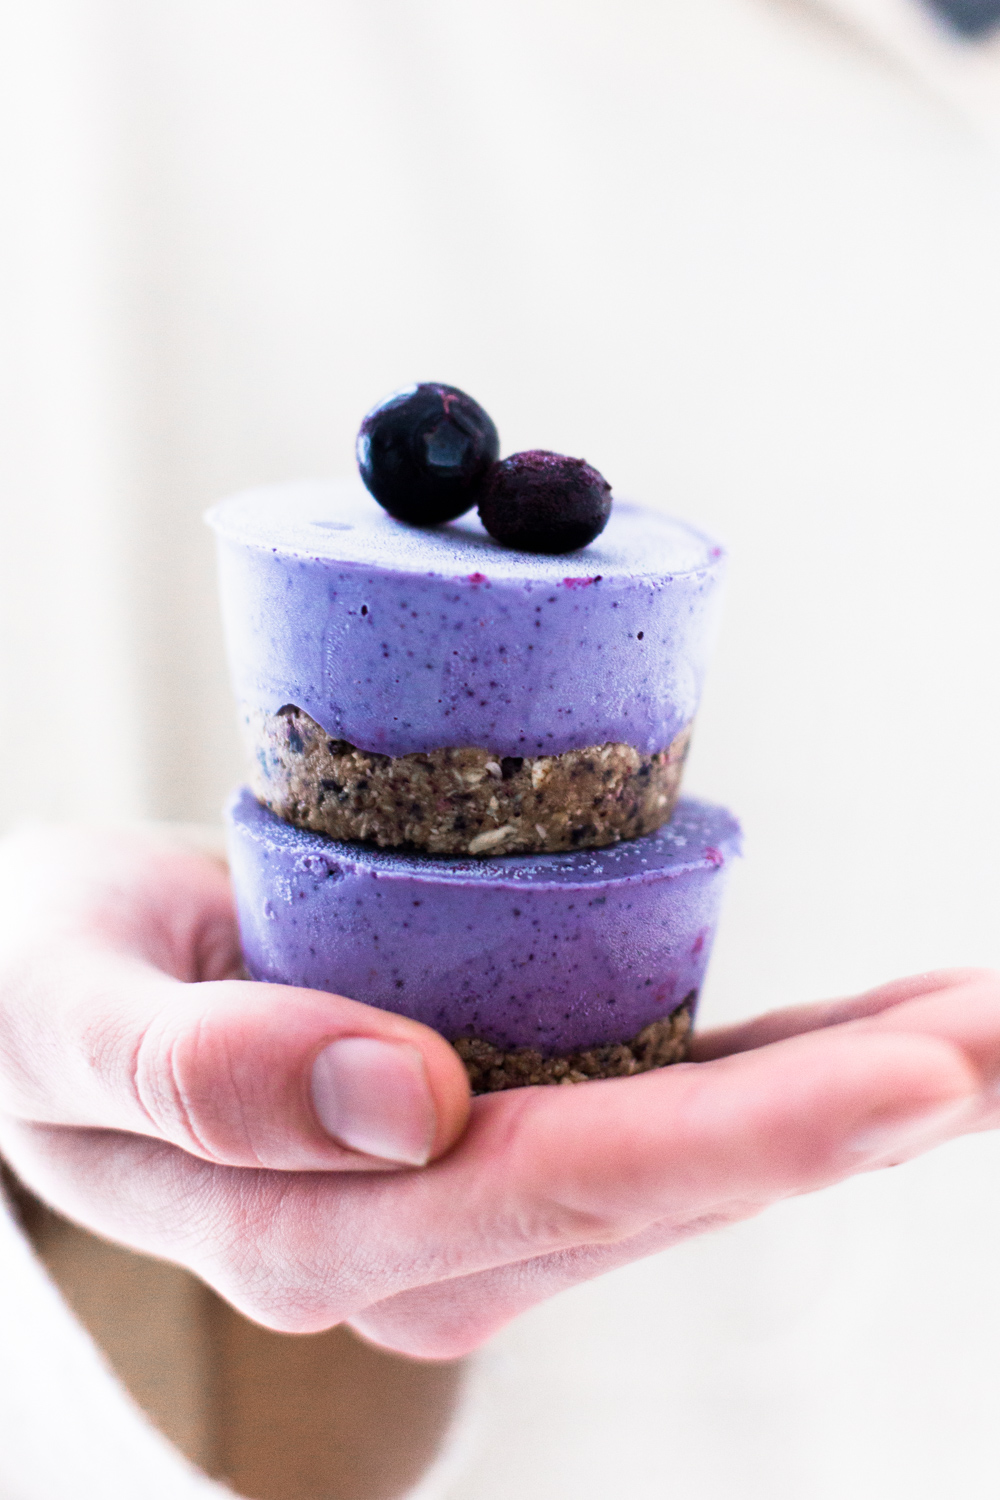 Delicious Raw Vegan Blueberry Cheesecake Bites with a fruity Oatmeal Crust. Refined Sugar Free and takes only 20 minutes to prepare. #vegan #cheesecake #raw #blueberrycheesecake #nobake #healthy #simple #icecream #cashews #veganrecipes #healthyvegan #natural #refinedsugarfree #healthydesserts #healthydessertrecipes